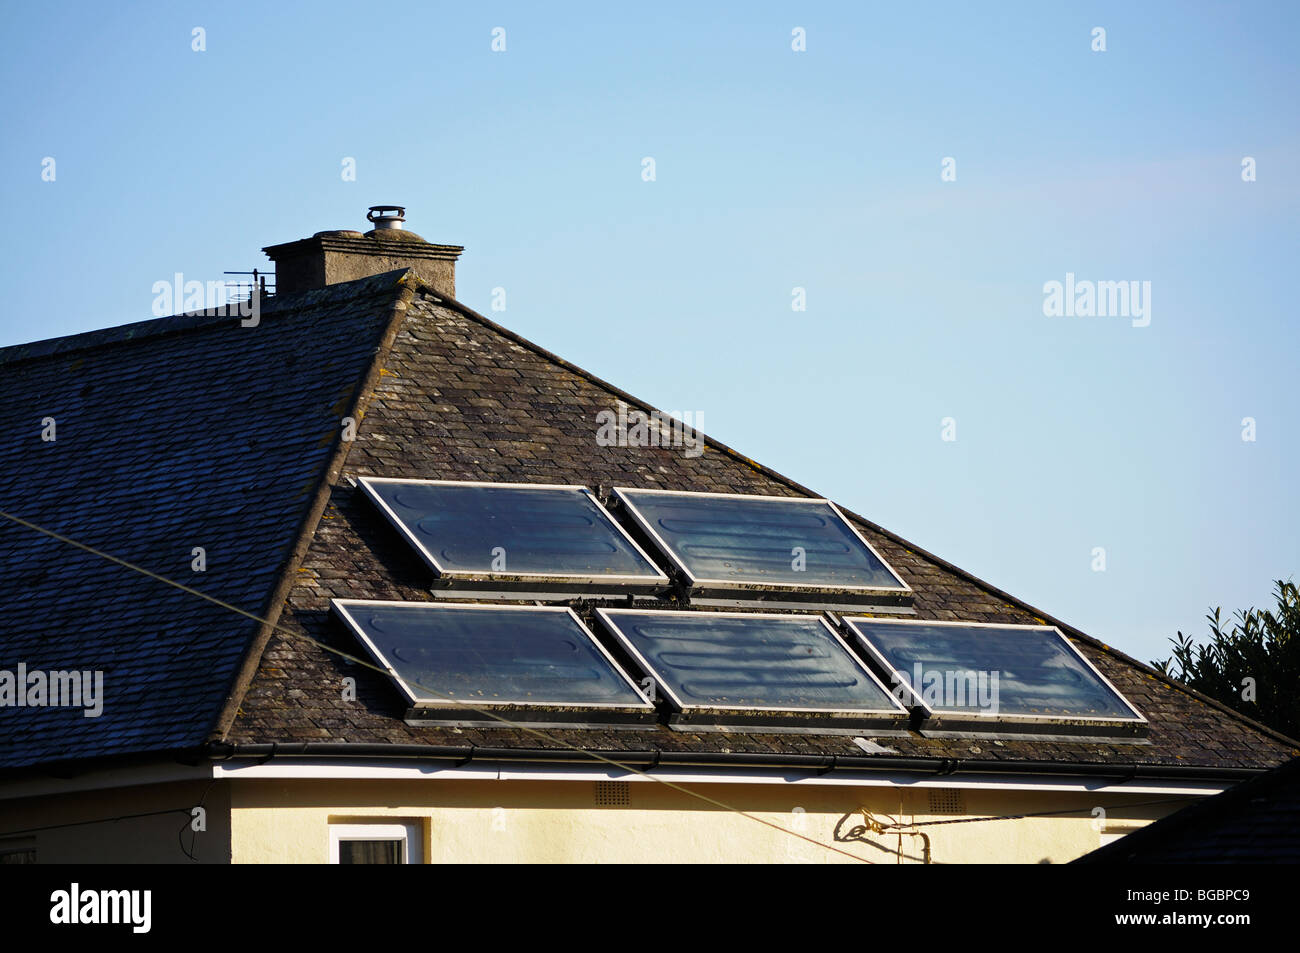 solar panels in the roof of a house in bristol, england, uk - Stock Image